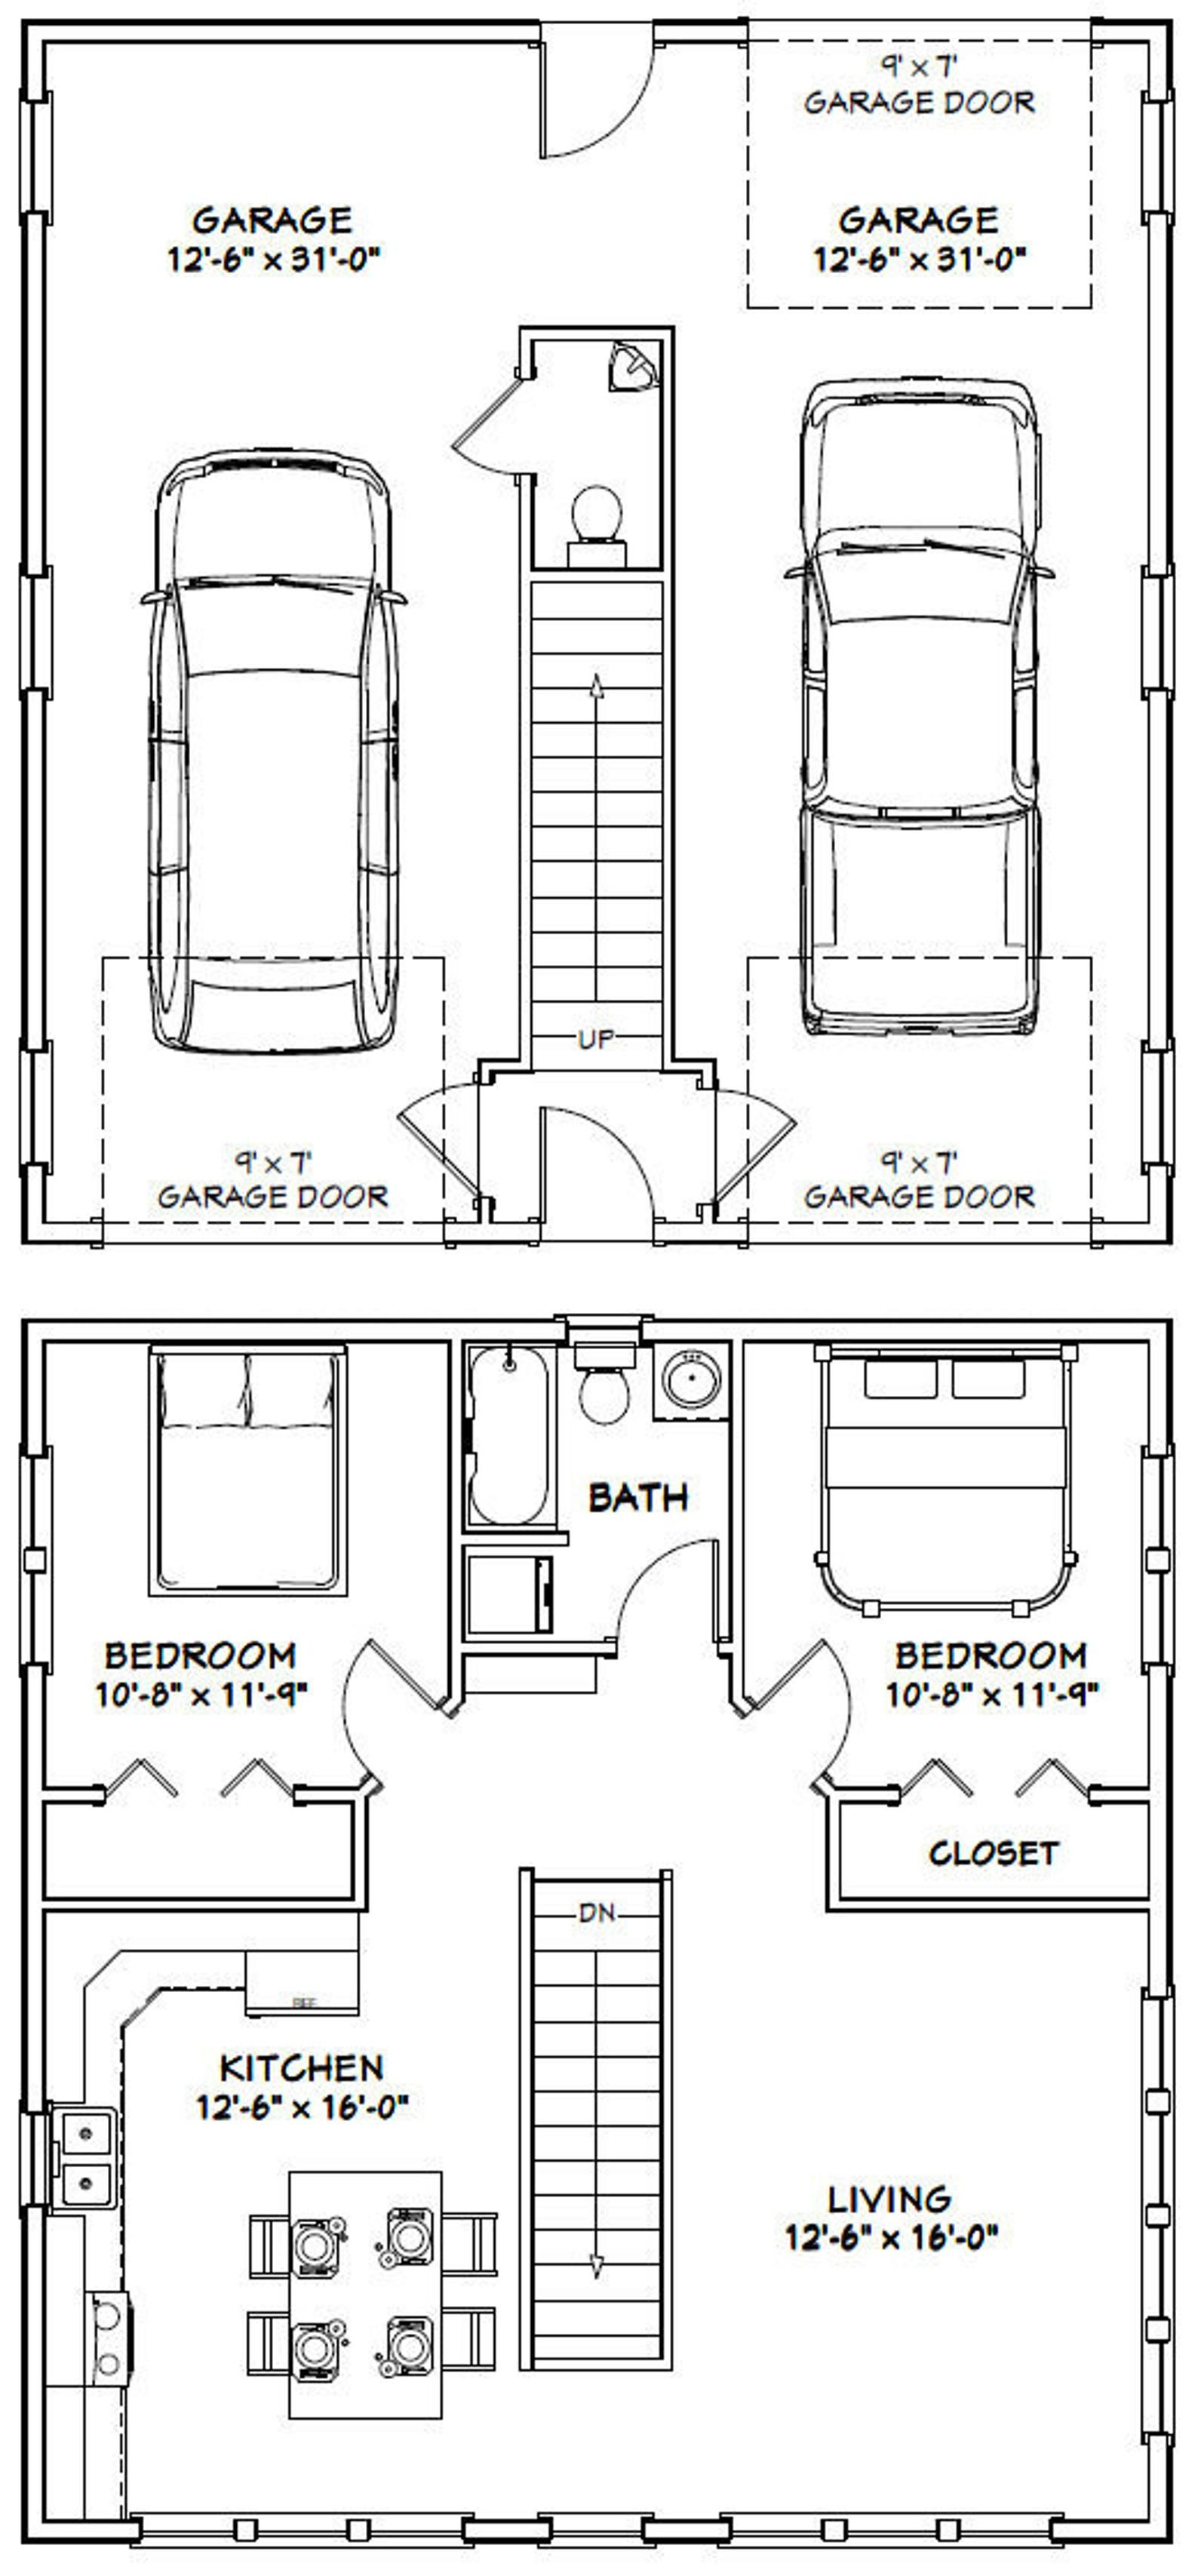 30x32 House -- 2-Bedroom 1.5 Bath -- 961 sq ft -- PDF ...